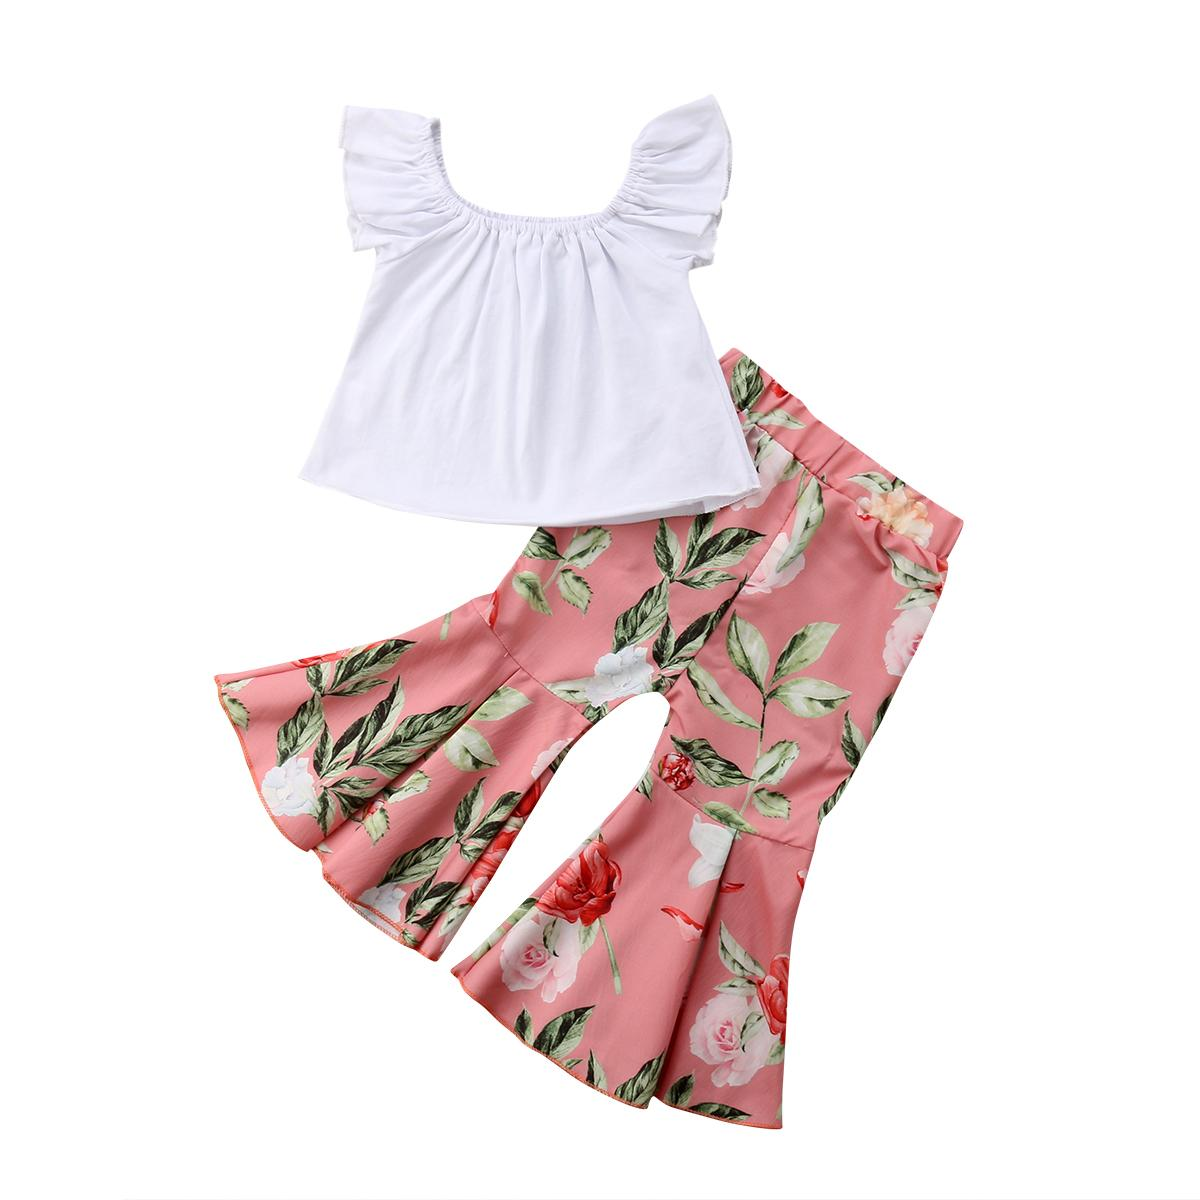 Outdoor newborn toddler baby girl suit sleeveless white top+ floral flared pants fashion kid girl suit